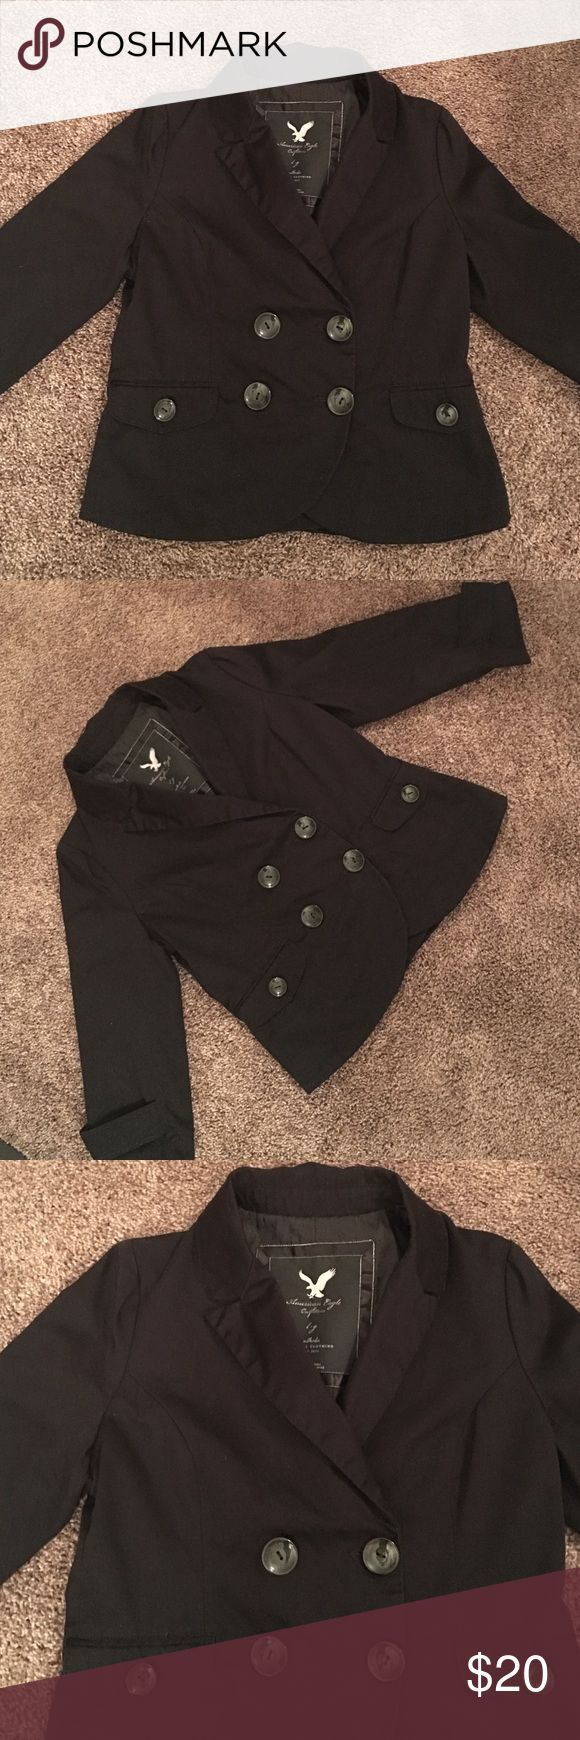 AMERICAN EAGLE JACKET Only worn a few times. In excellent condition. 100% cotton. American Eagle Outfitters Jackets & Coats